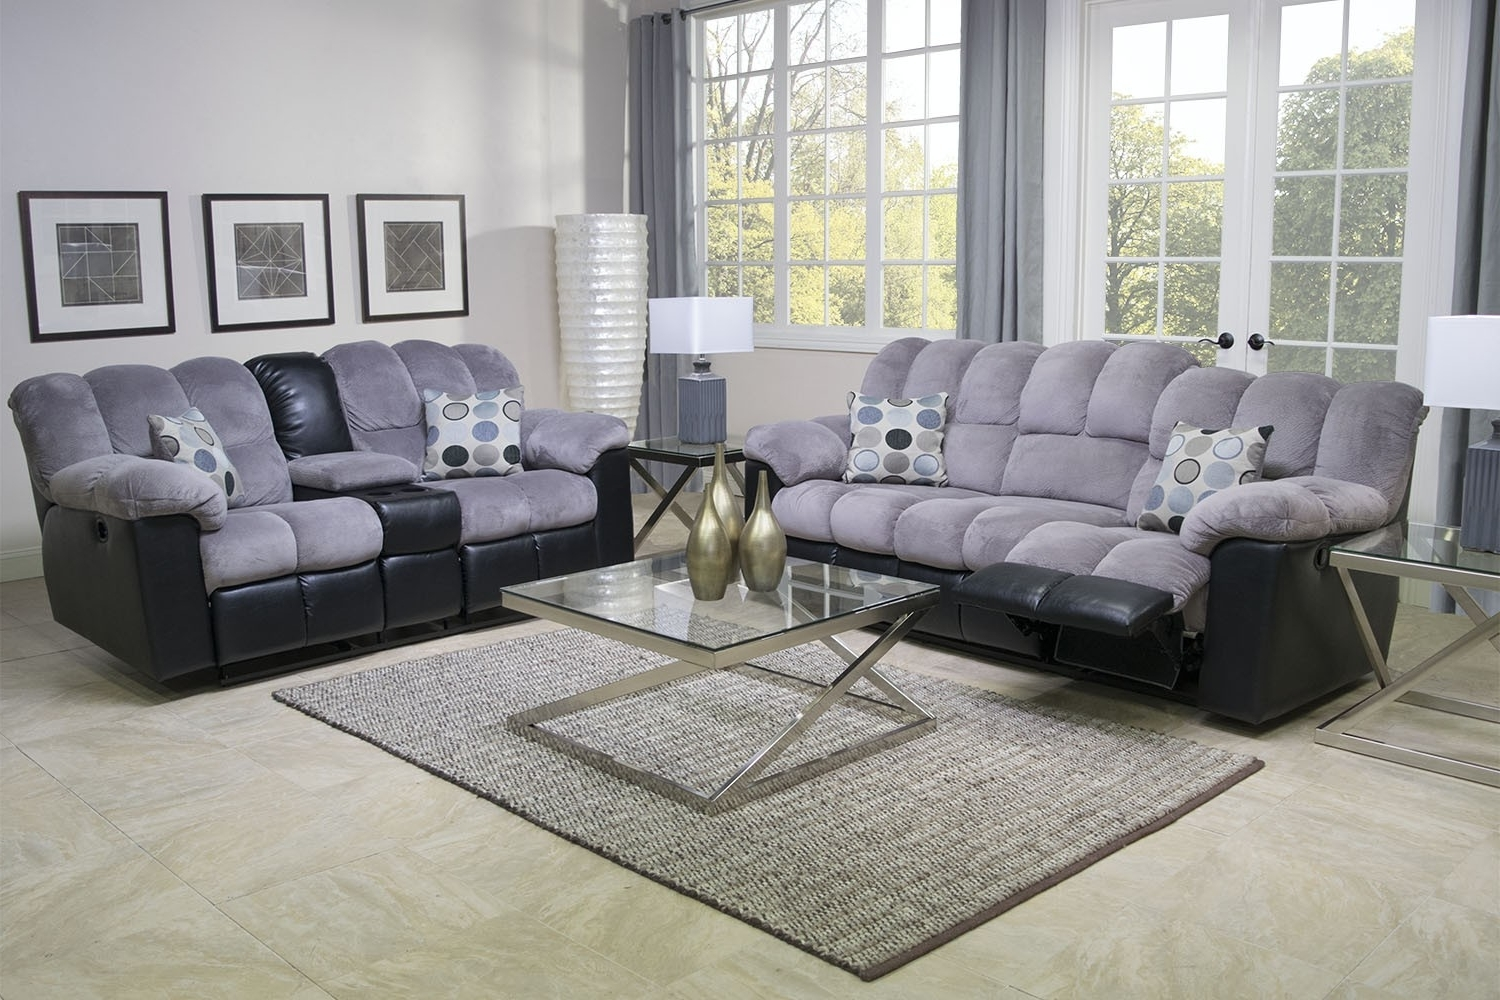 Trendy Fountain Gray Reclining Sofa Living Room/sofas (View 15 of 20)